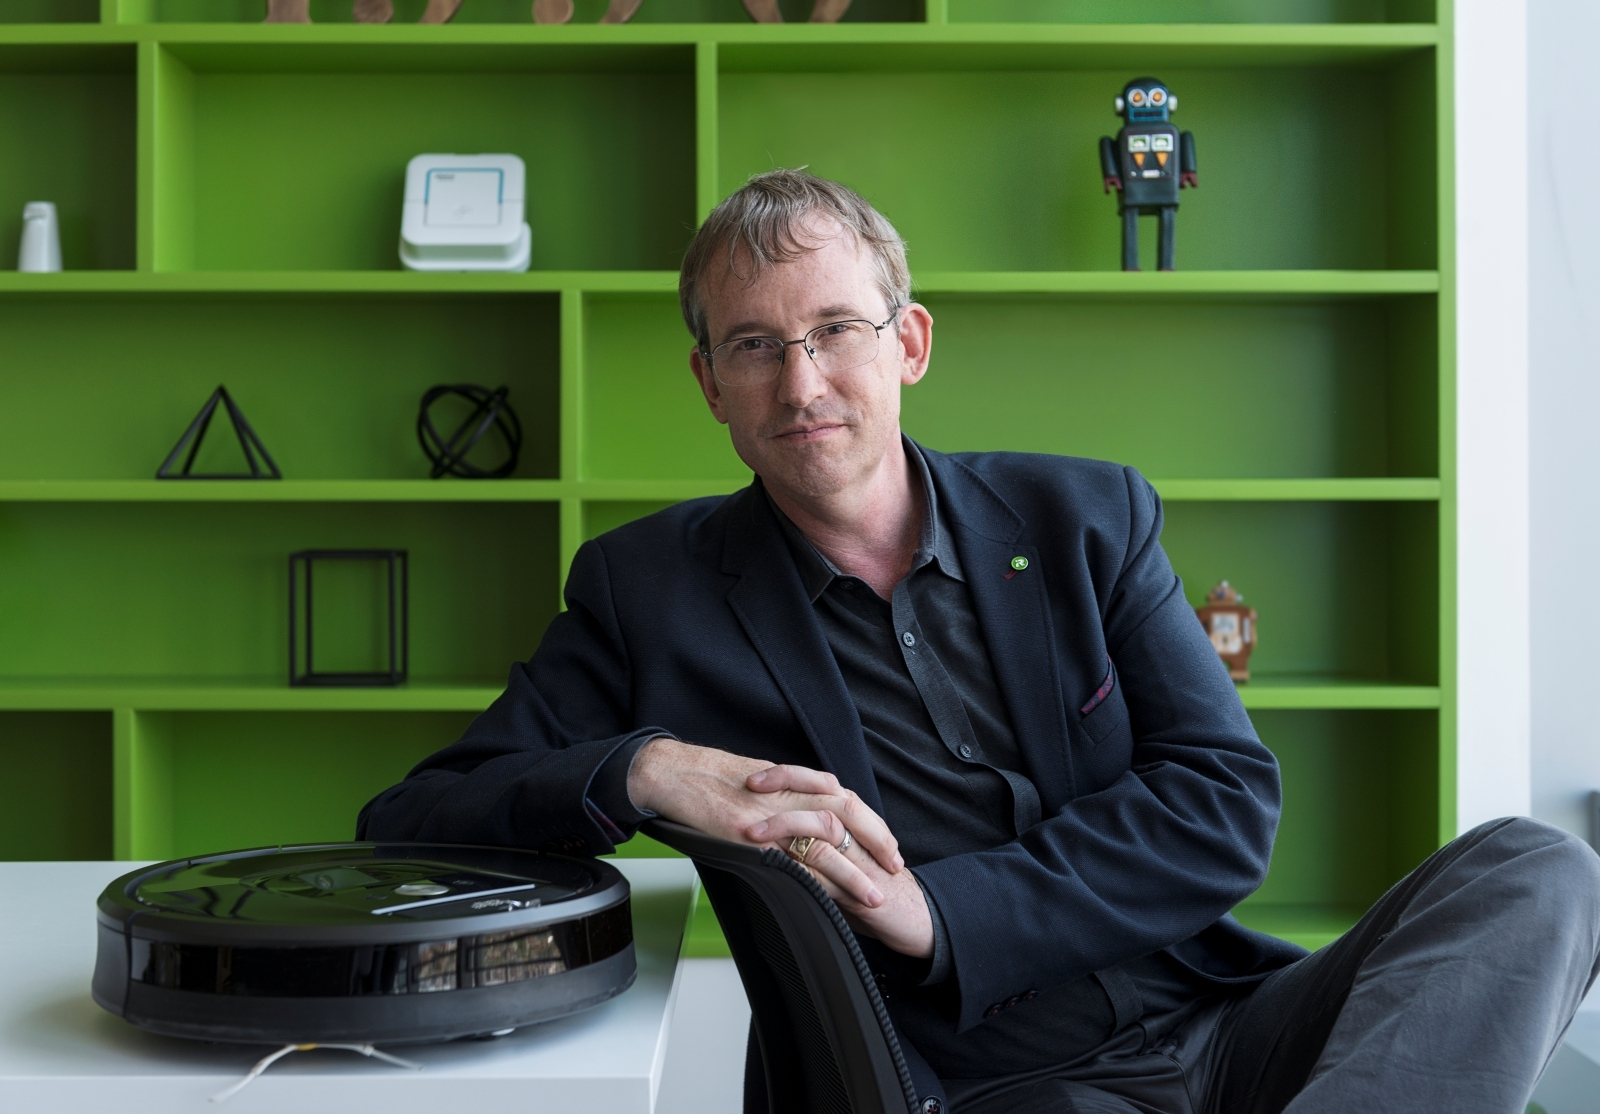 Roomba Maps Your Home; CEO Says Data Could Be Sold